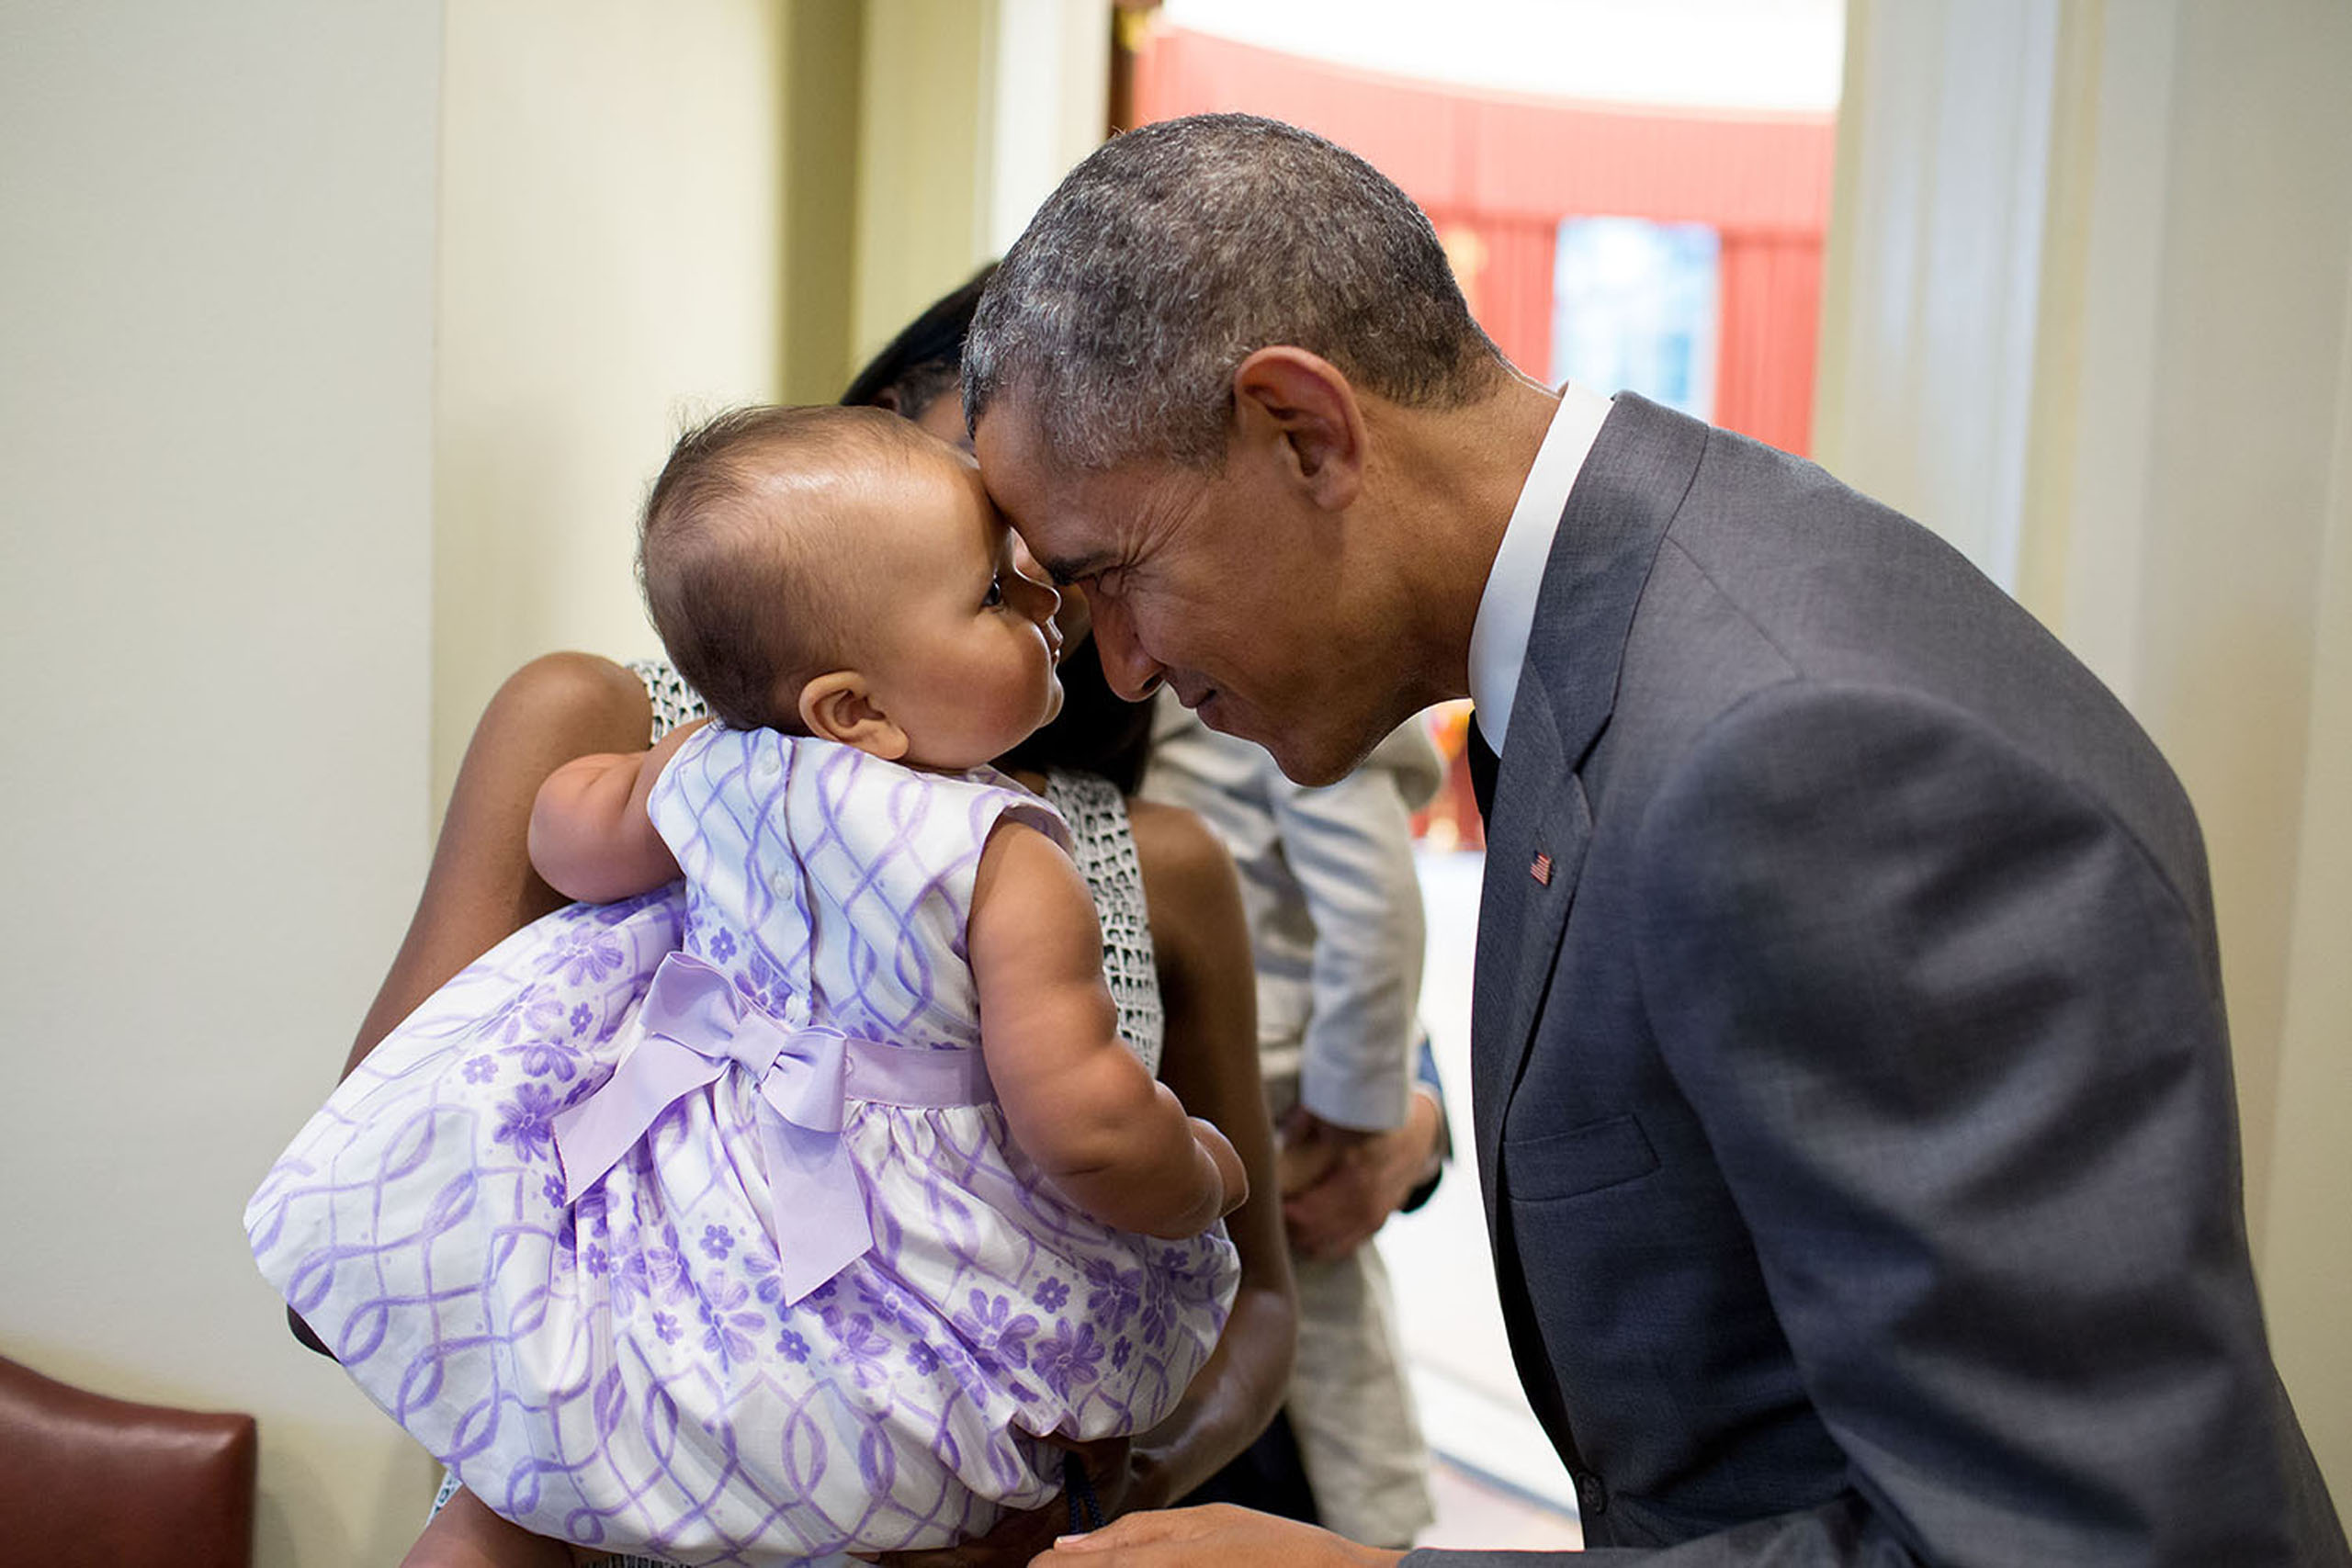 The President greets nine-month-old Josephine Gronniger, whose father, Tim Gronniger, brought his family by the Oval Office for a family photo on July 17, 2015.